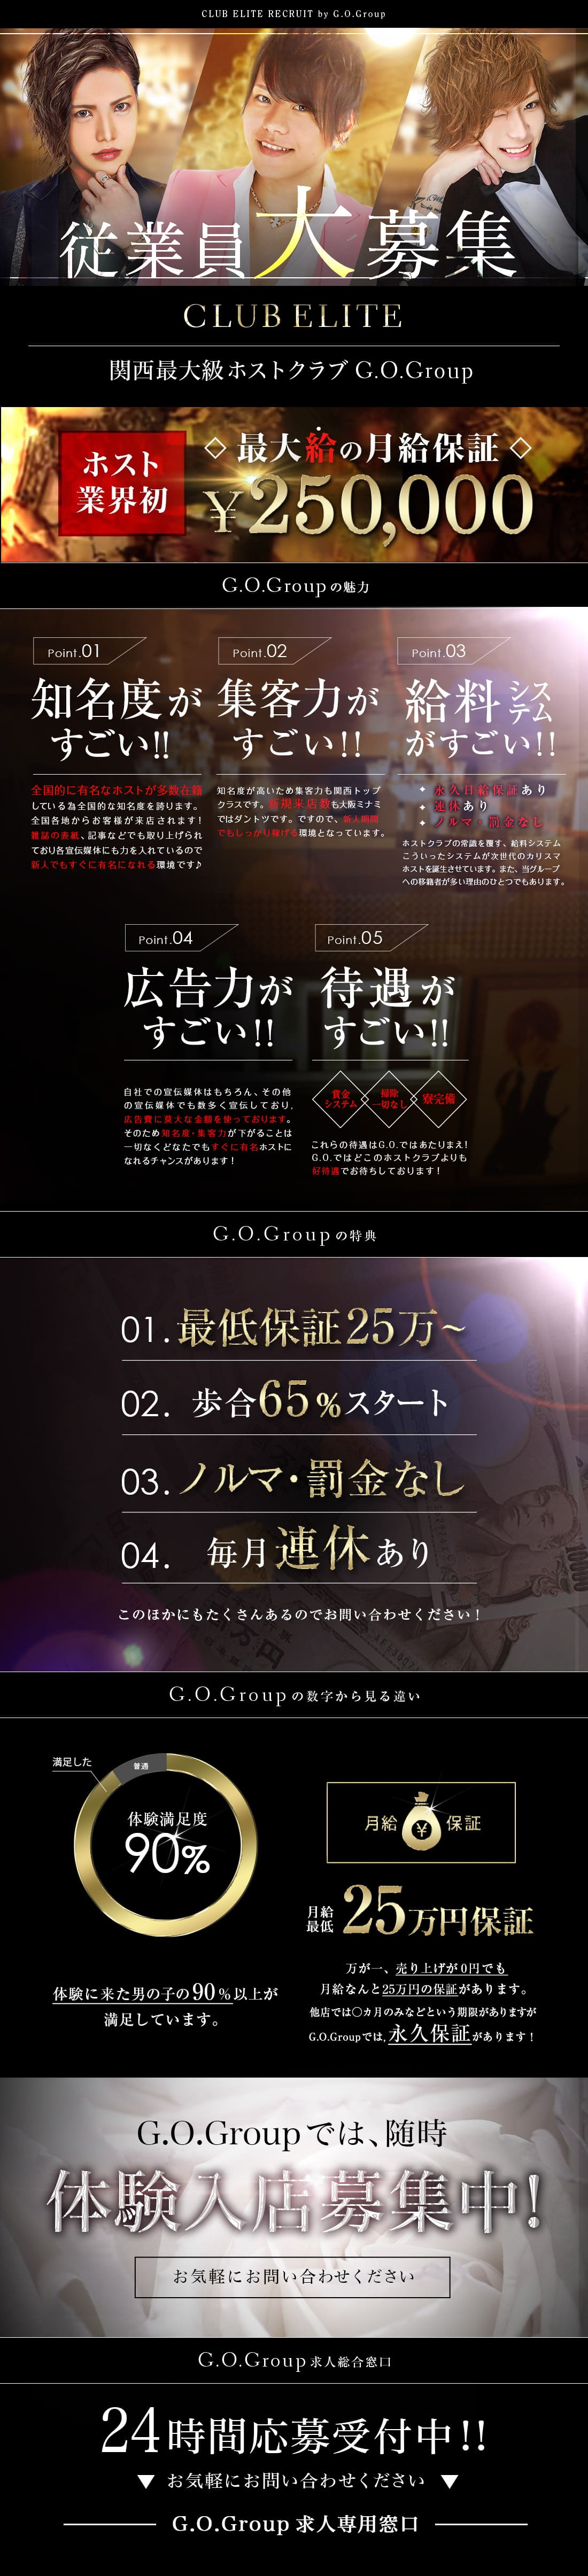 ELITE G.O.Group|求人